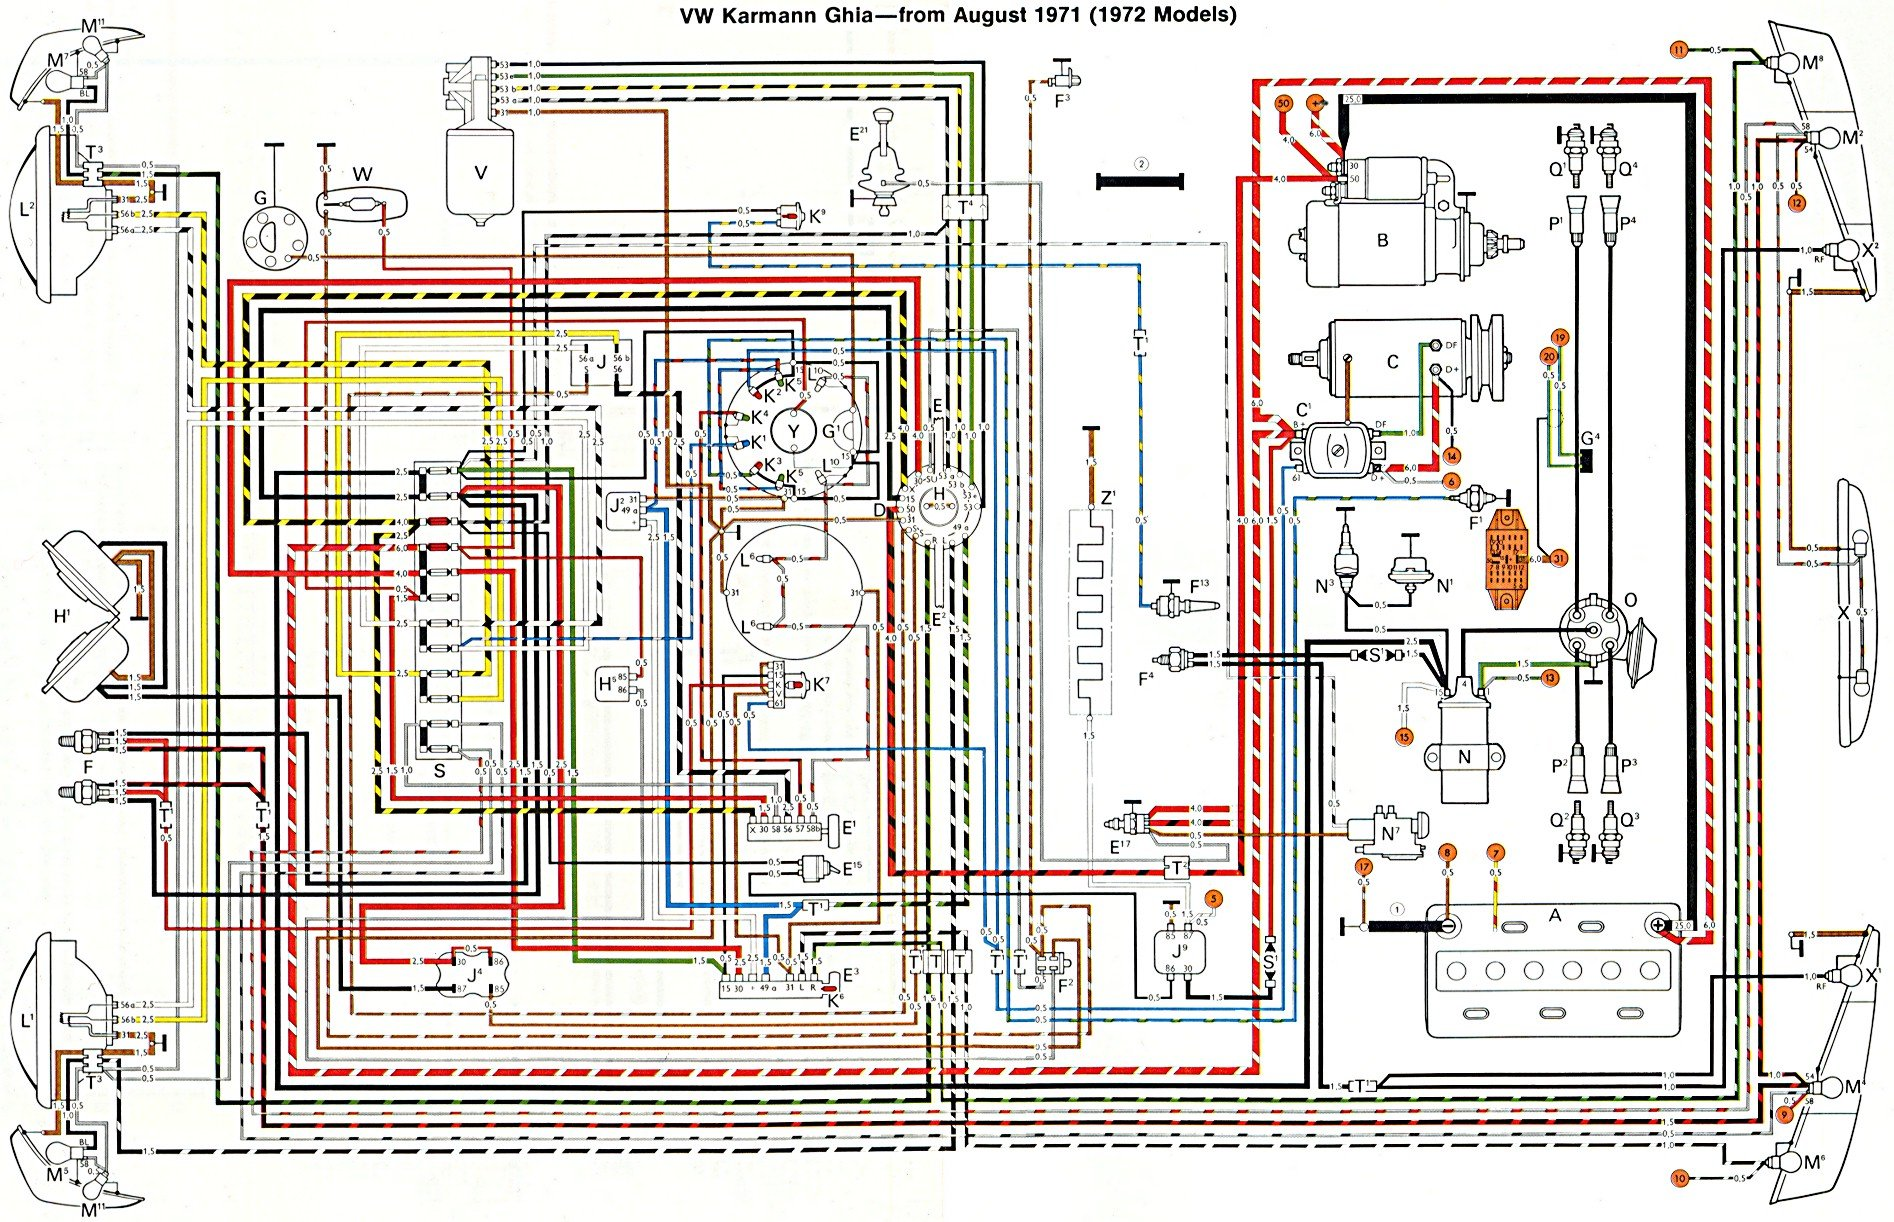 1966 Porsche Wiring Diagram Fuse Box Chevy Truck Thesamba Com Karmann Ghia Diagrams Rh 911